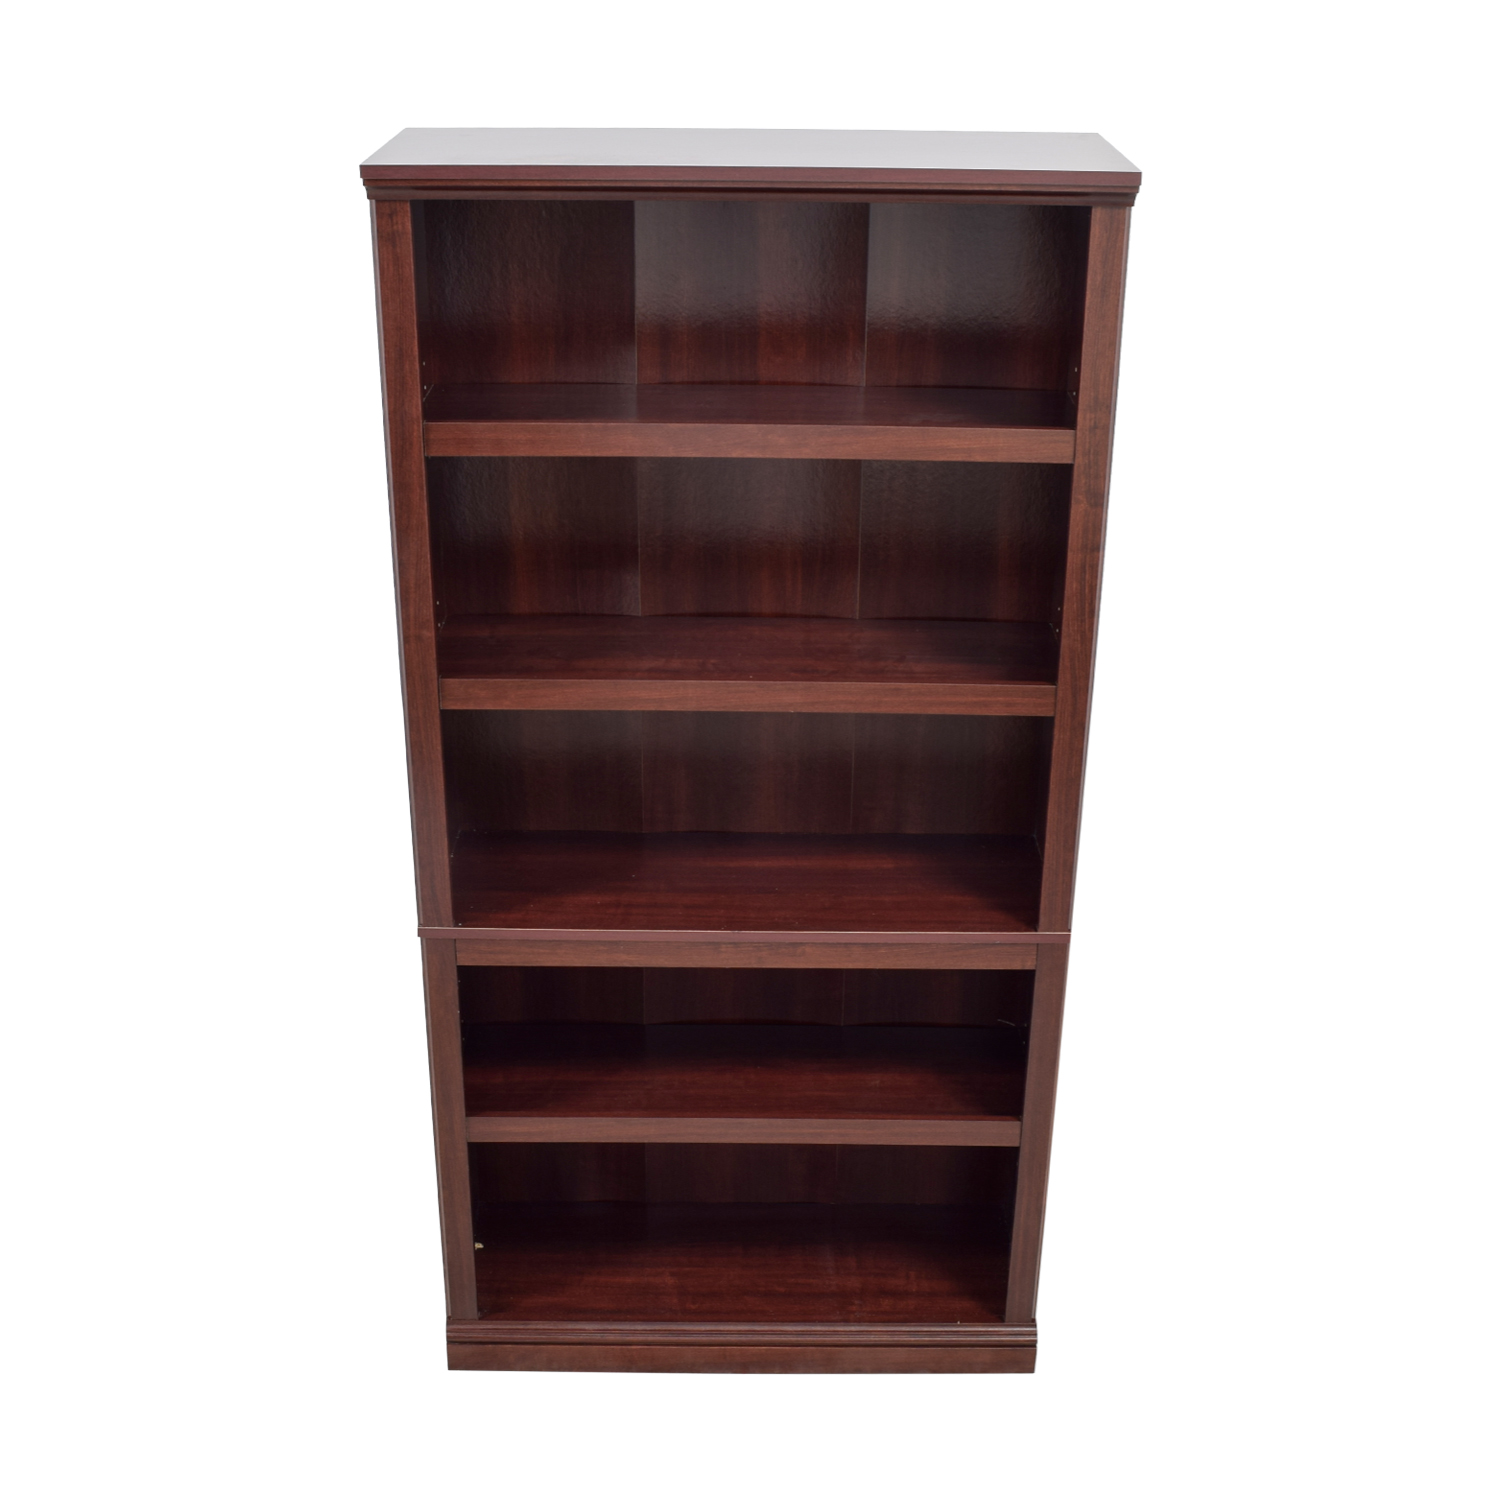 Custom Wood Bookshelf Nj